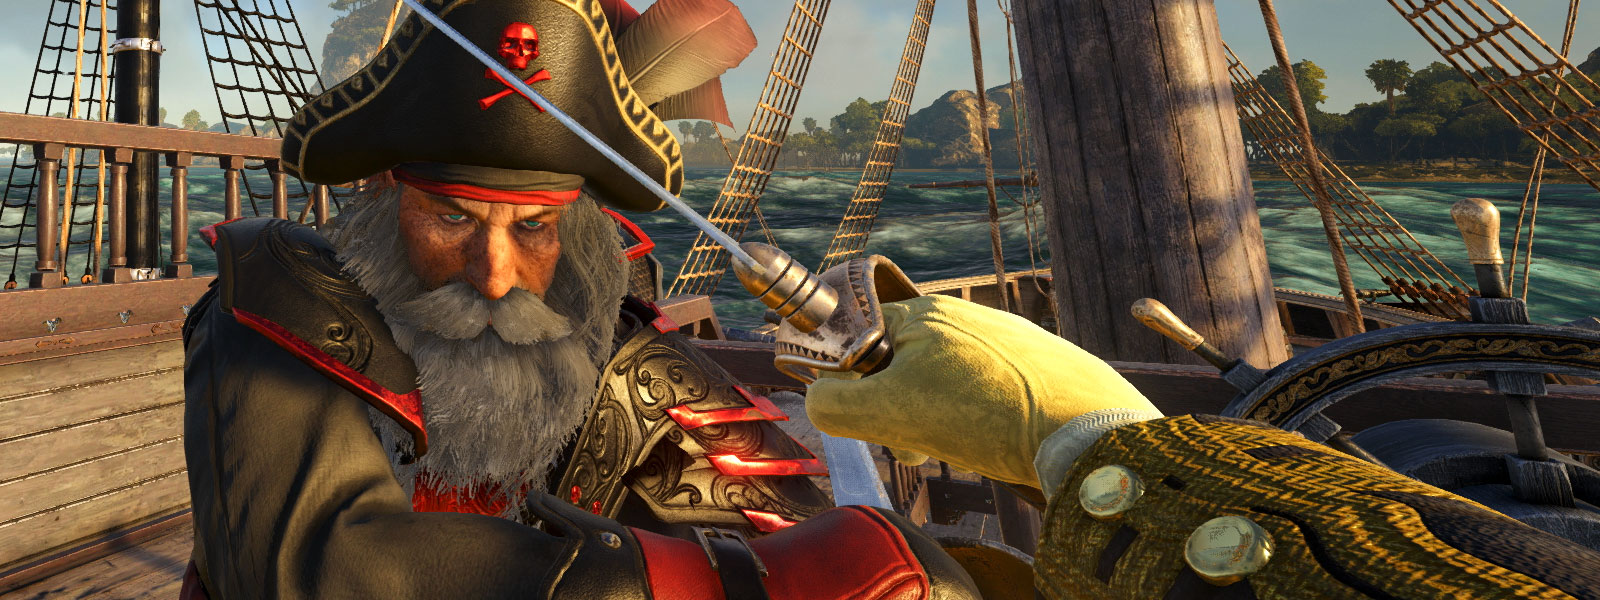 First person view of a character fighting a pirate with a sword on the deck of a ship in the water